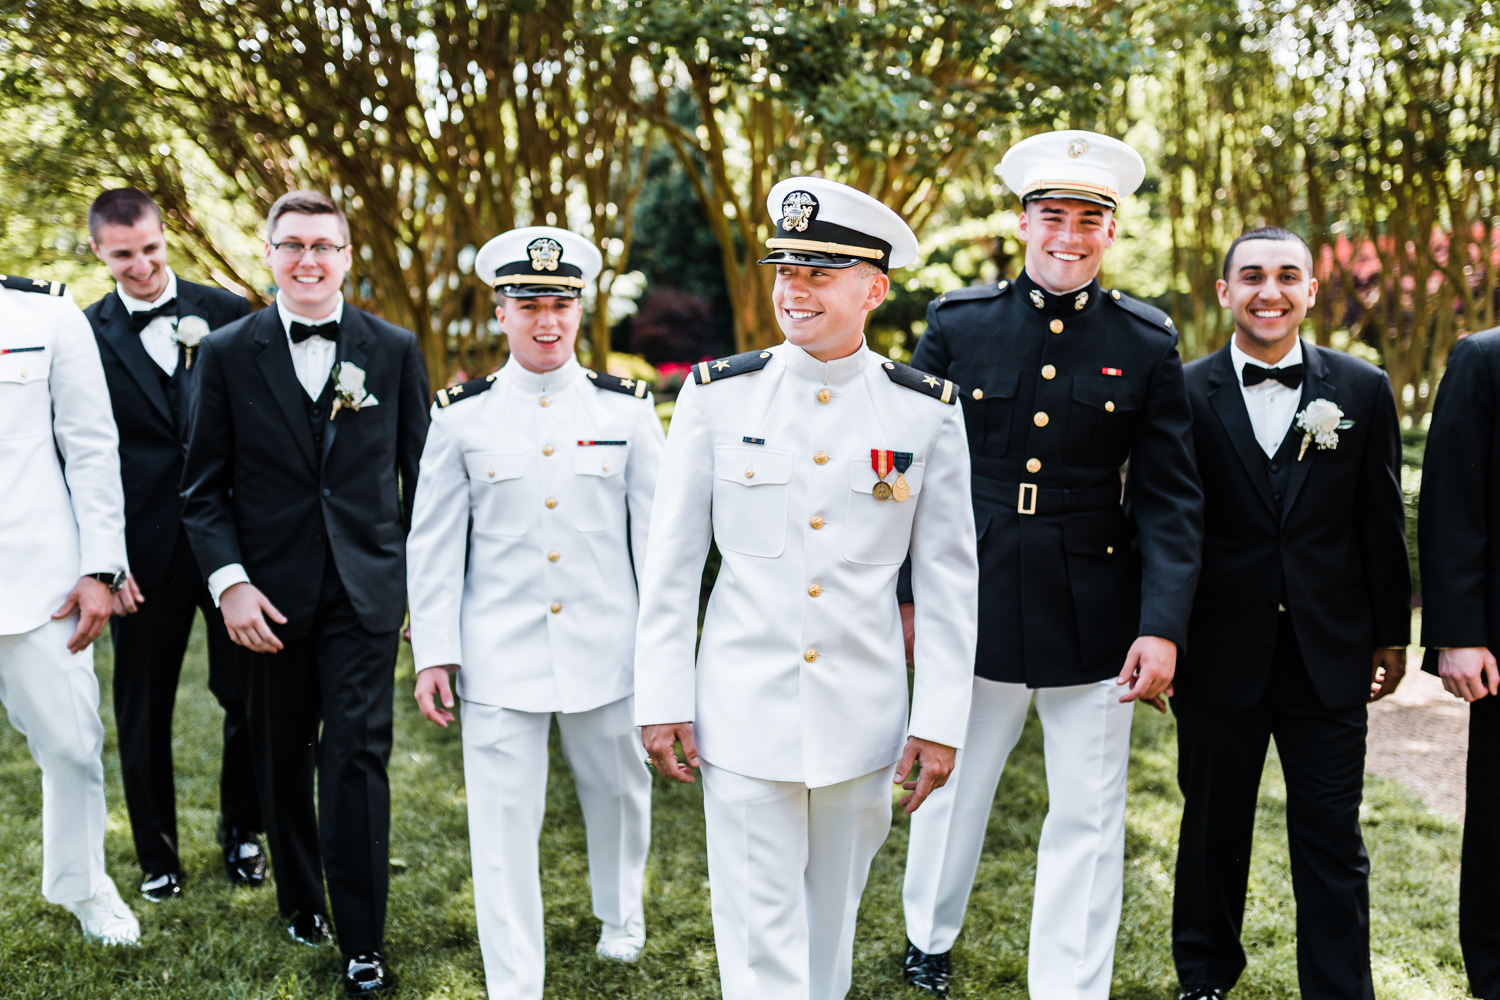 groom and his groomsmen at the naval academy